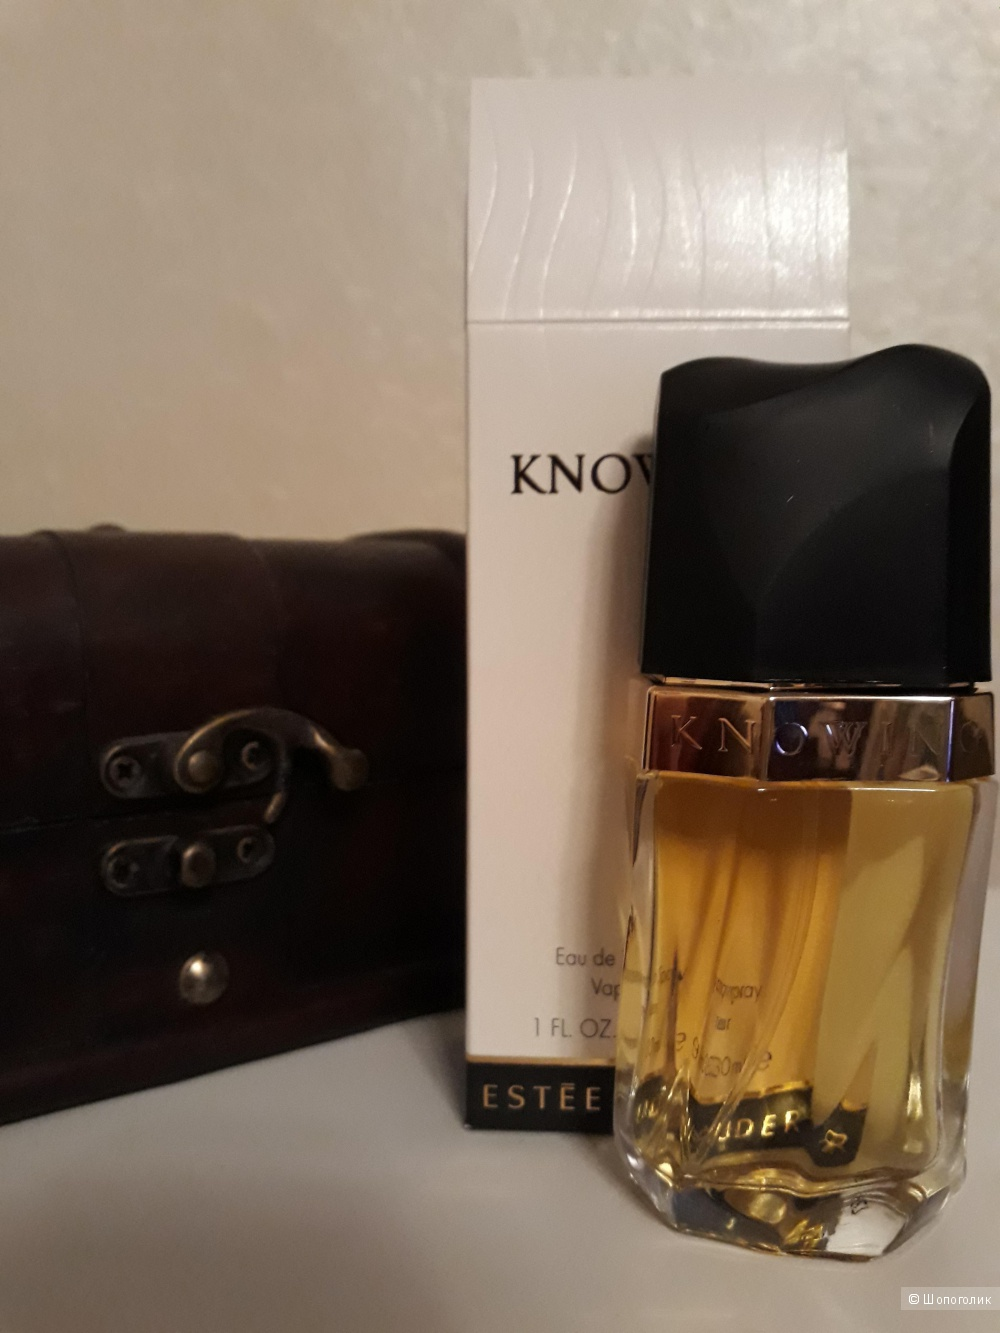 Knowing Estee Lauder 30ml